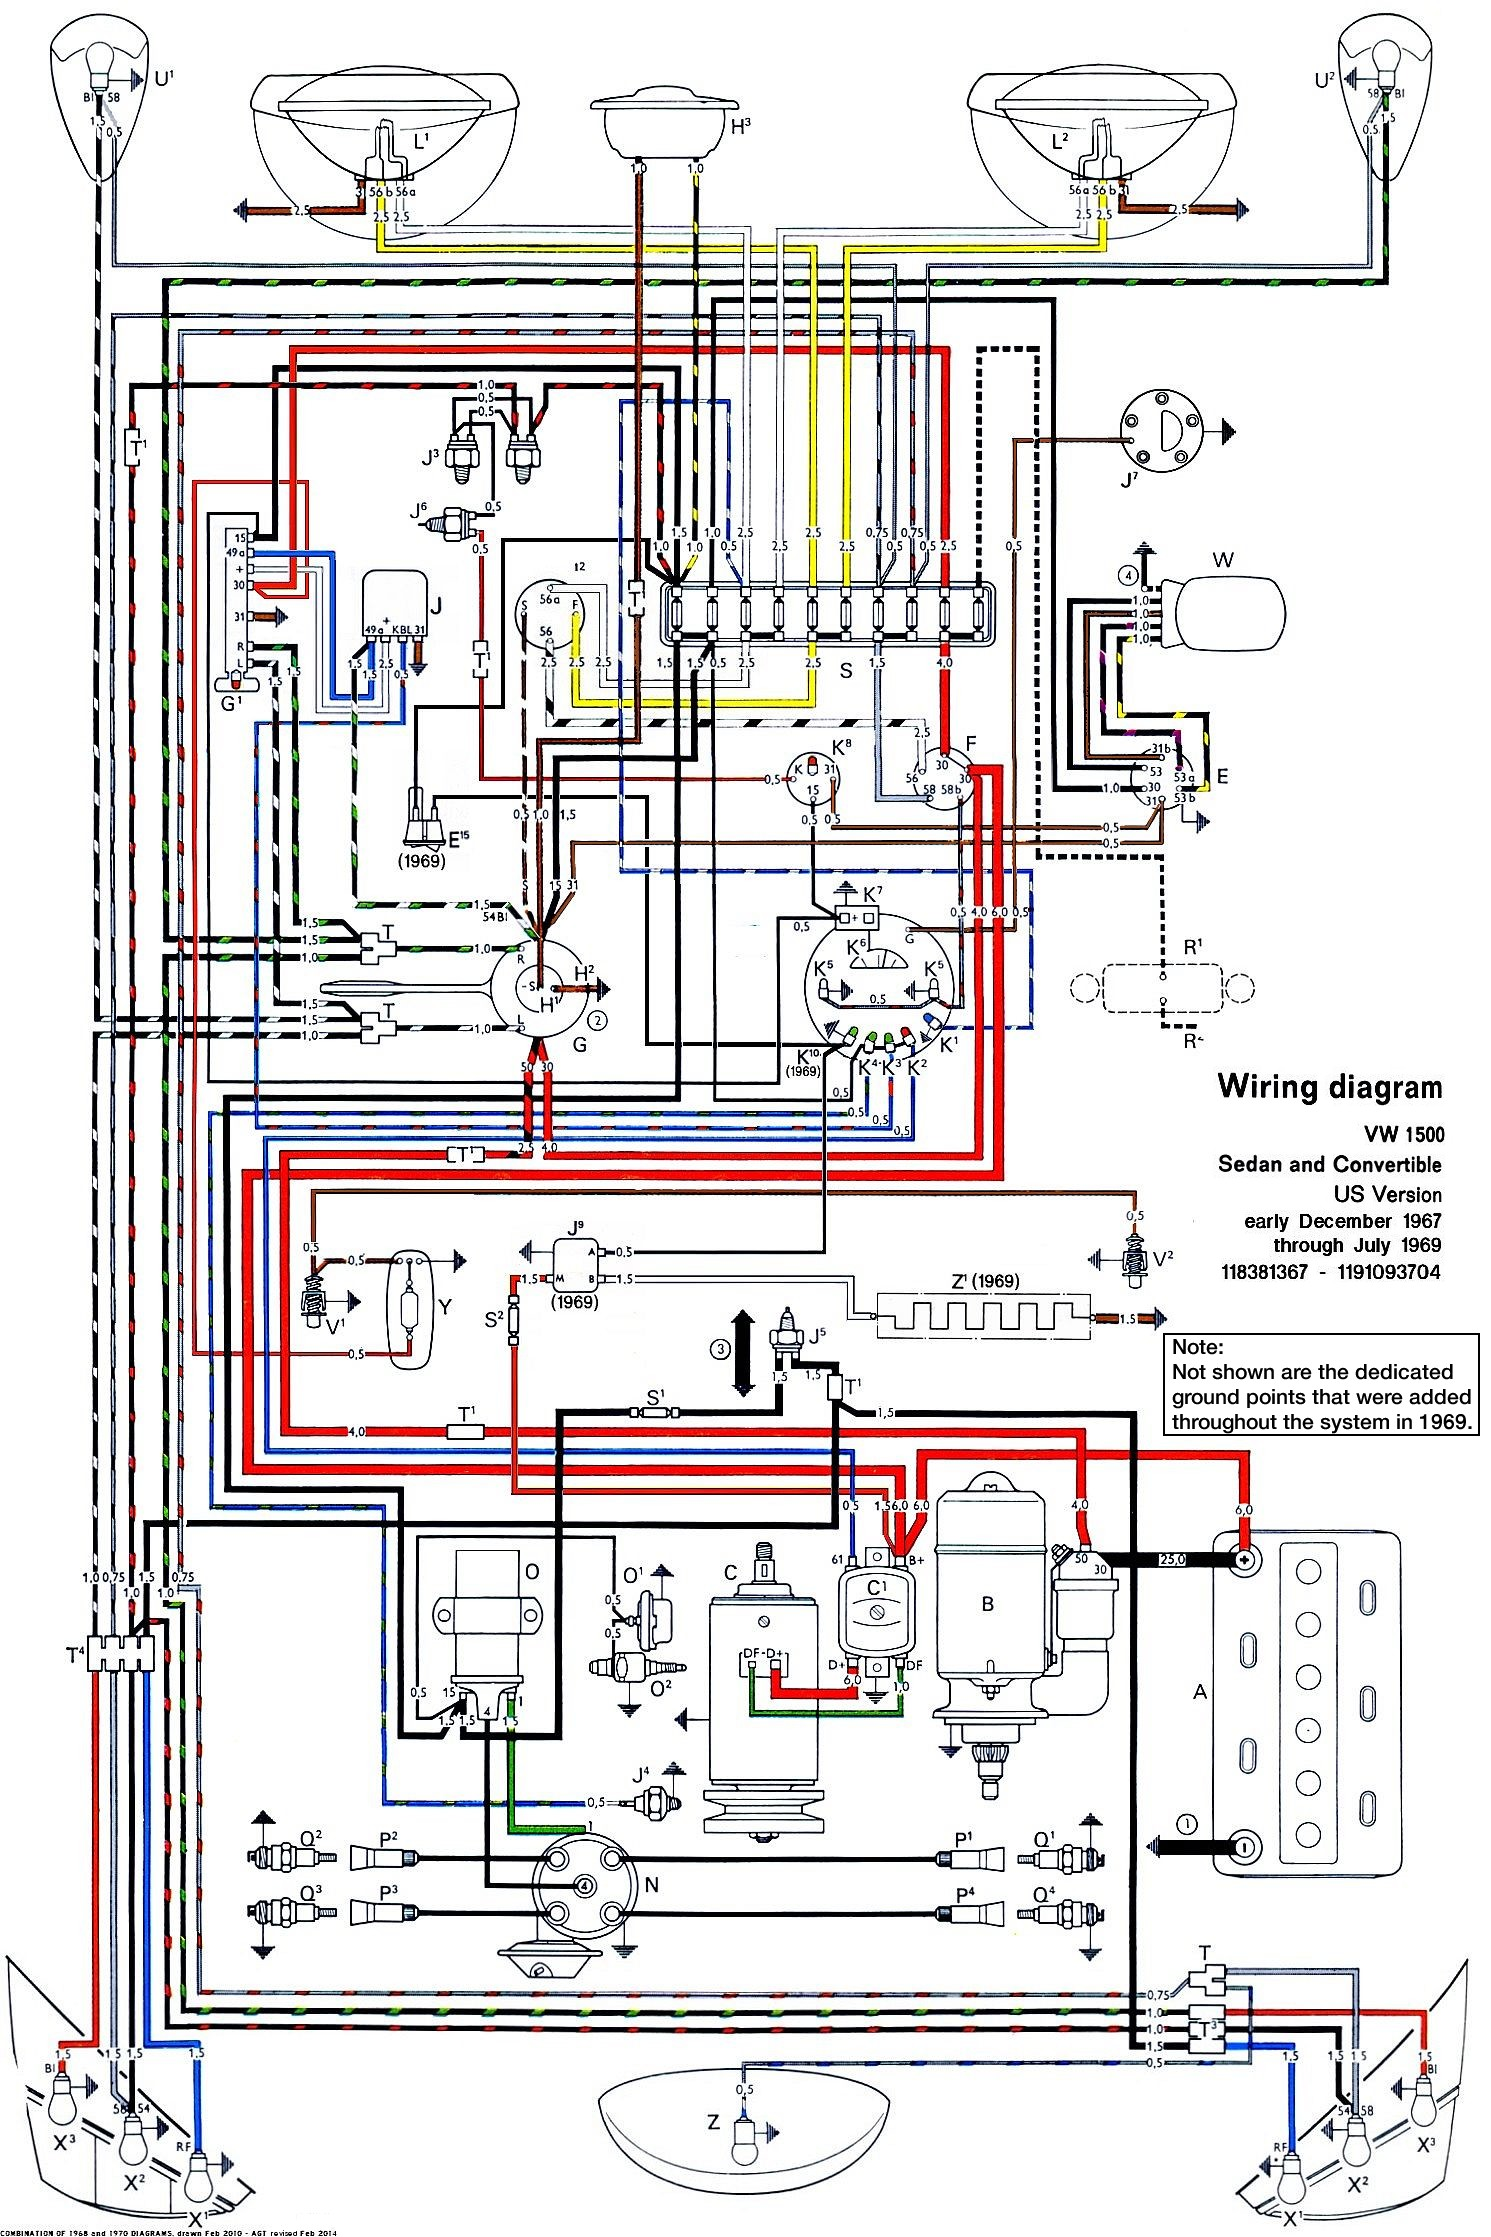 Jeepster wiring diagram headlight chevrolet